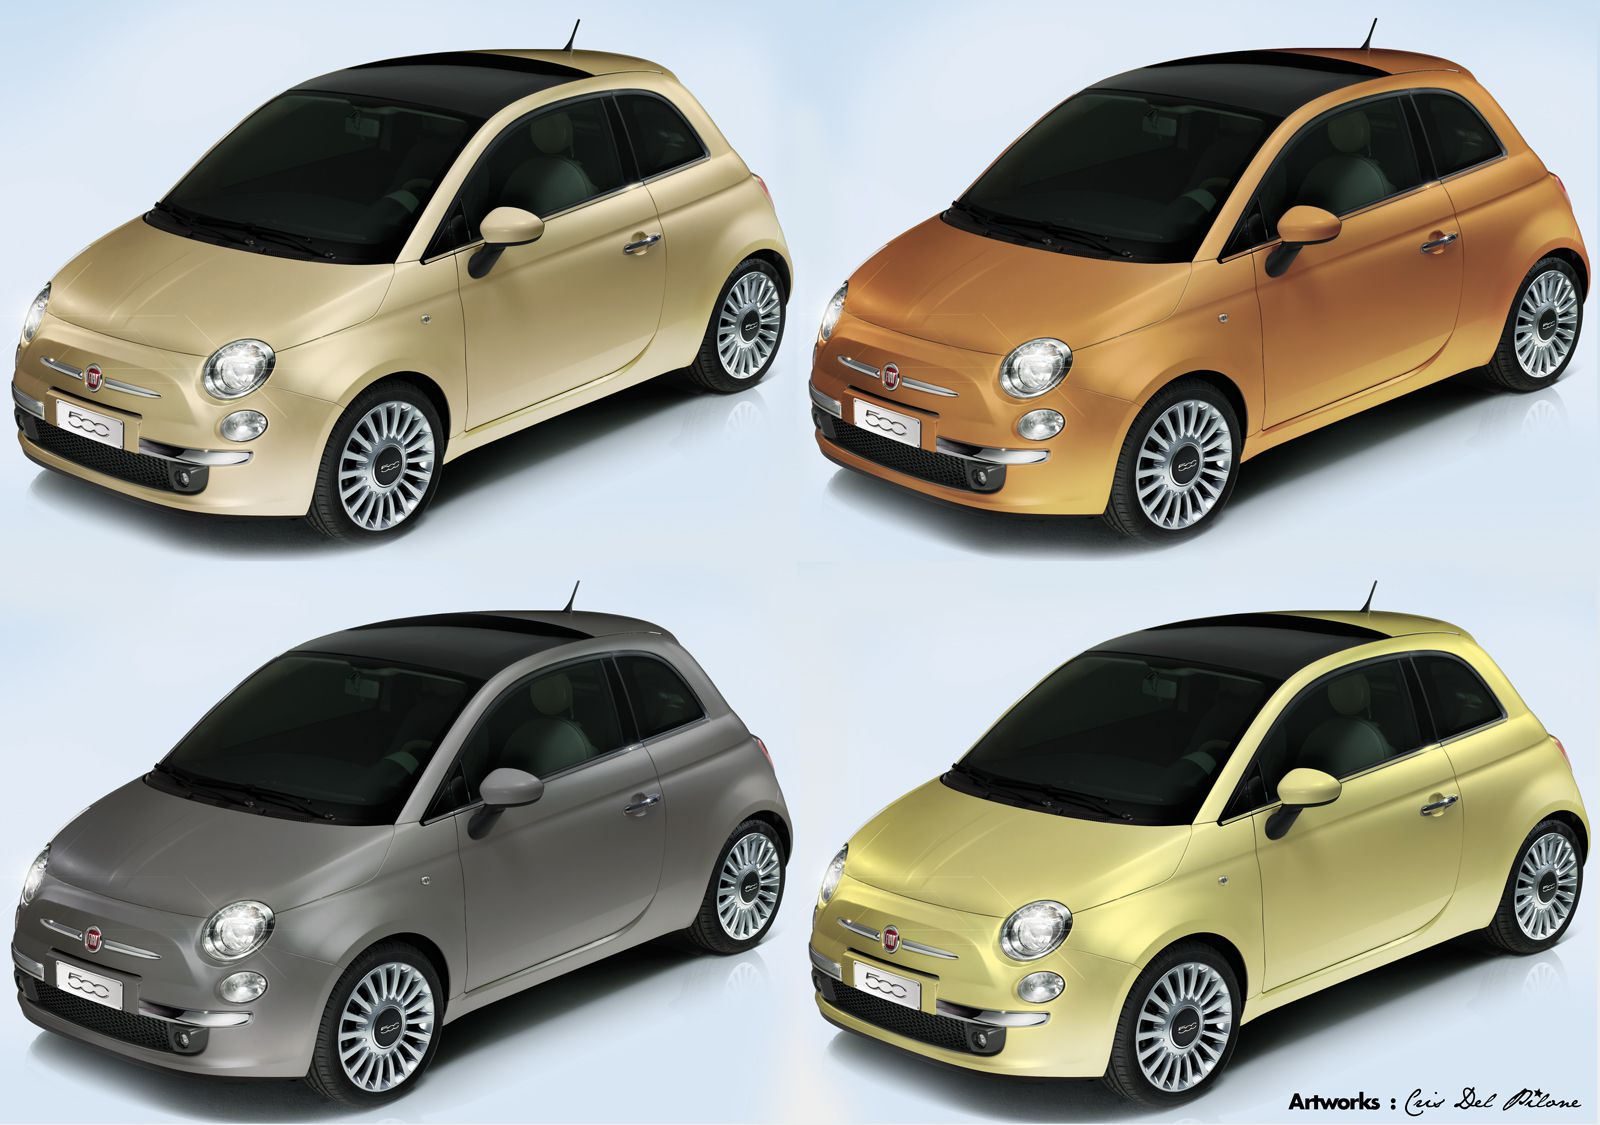 Topic236 in addition Abarth 20Fiat 20500 20Esseesse 20  20Funk 20White moreover Fiat 500 Petite Robe Noire By Guerlain Une Serie Limitee Sent 219468 also 6865531 furthermore Topic5645. on fiat 500 funk white